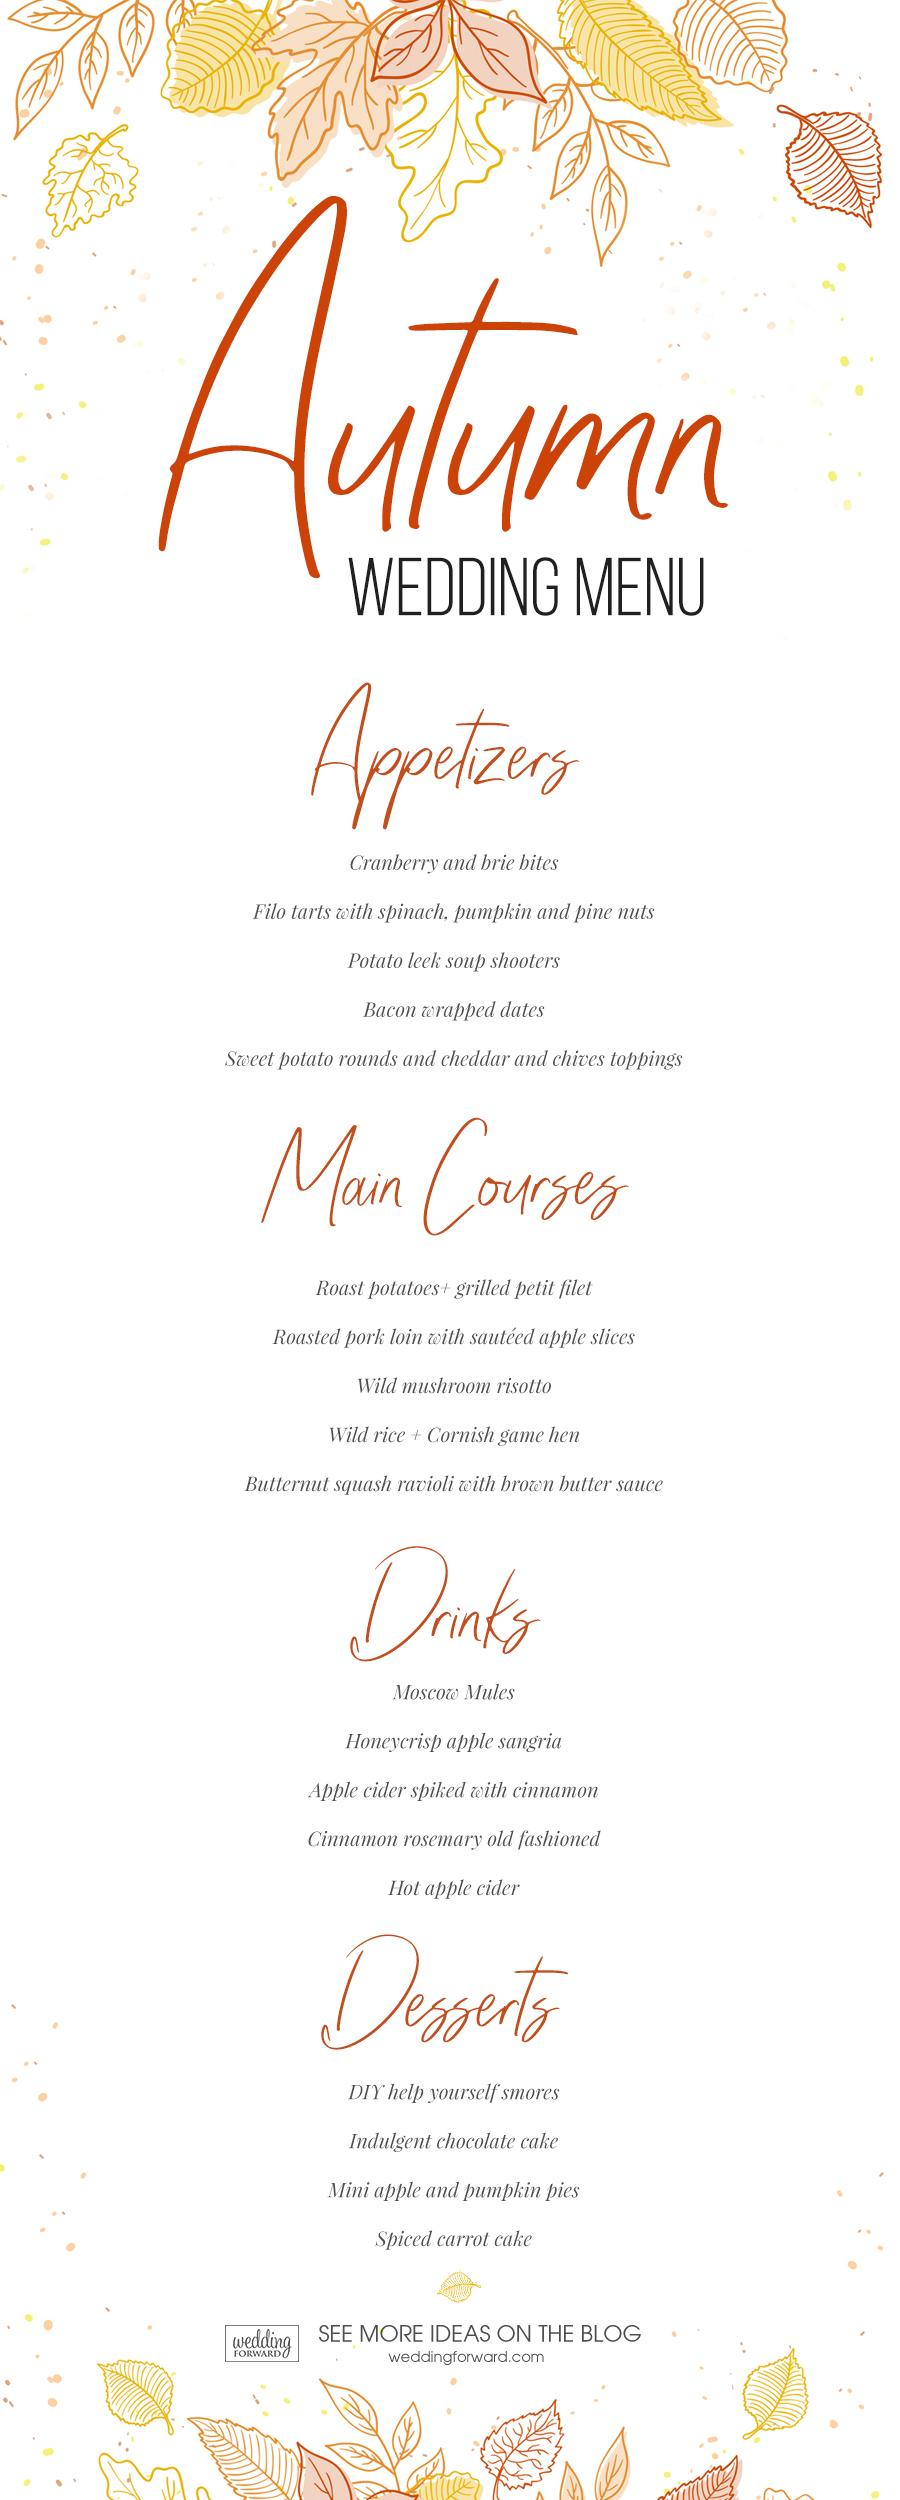 Fall wedding menu - wedding menu ideas for autumn